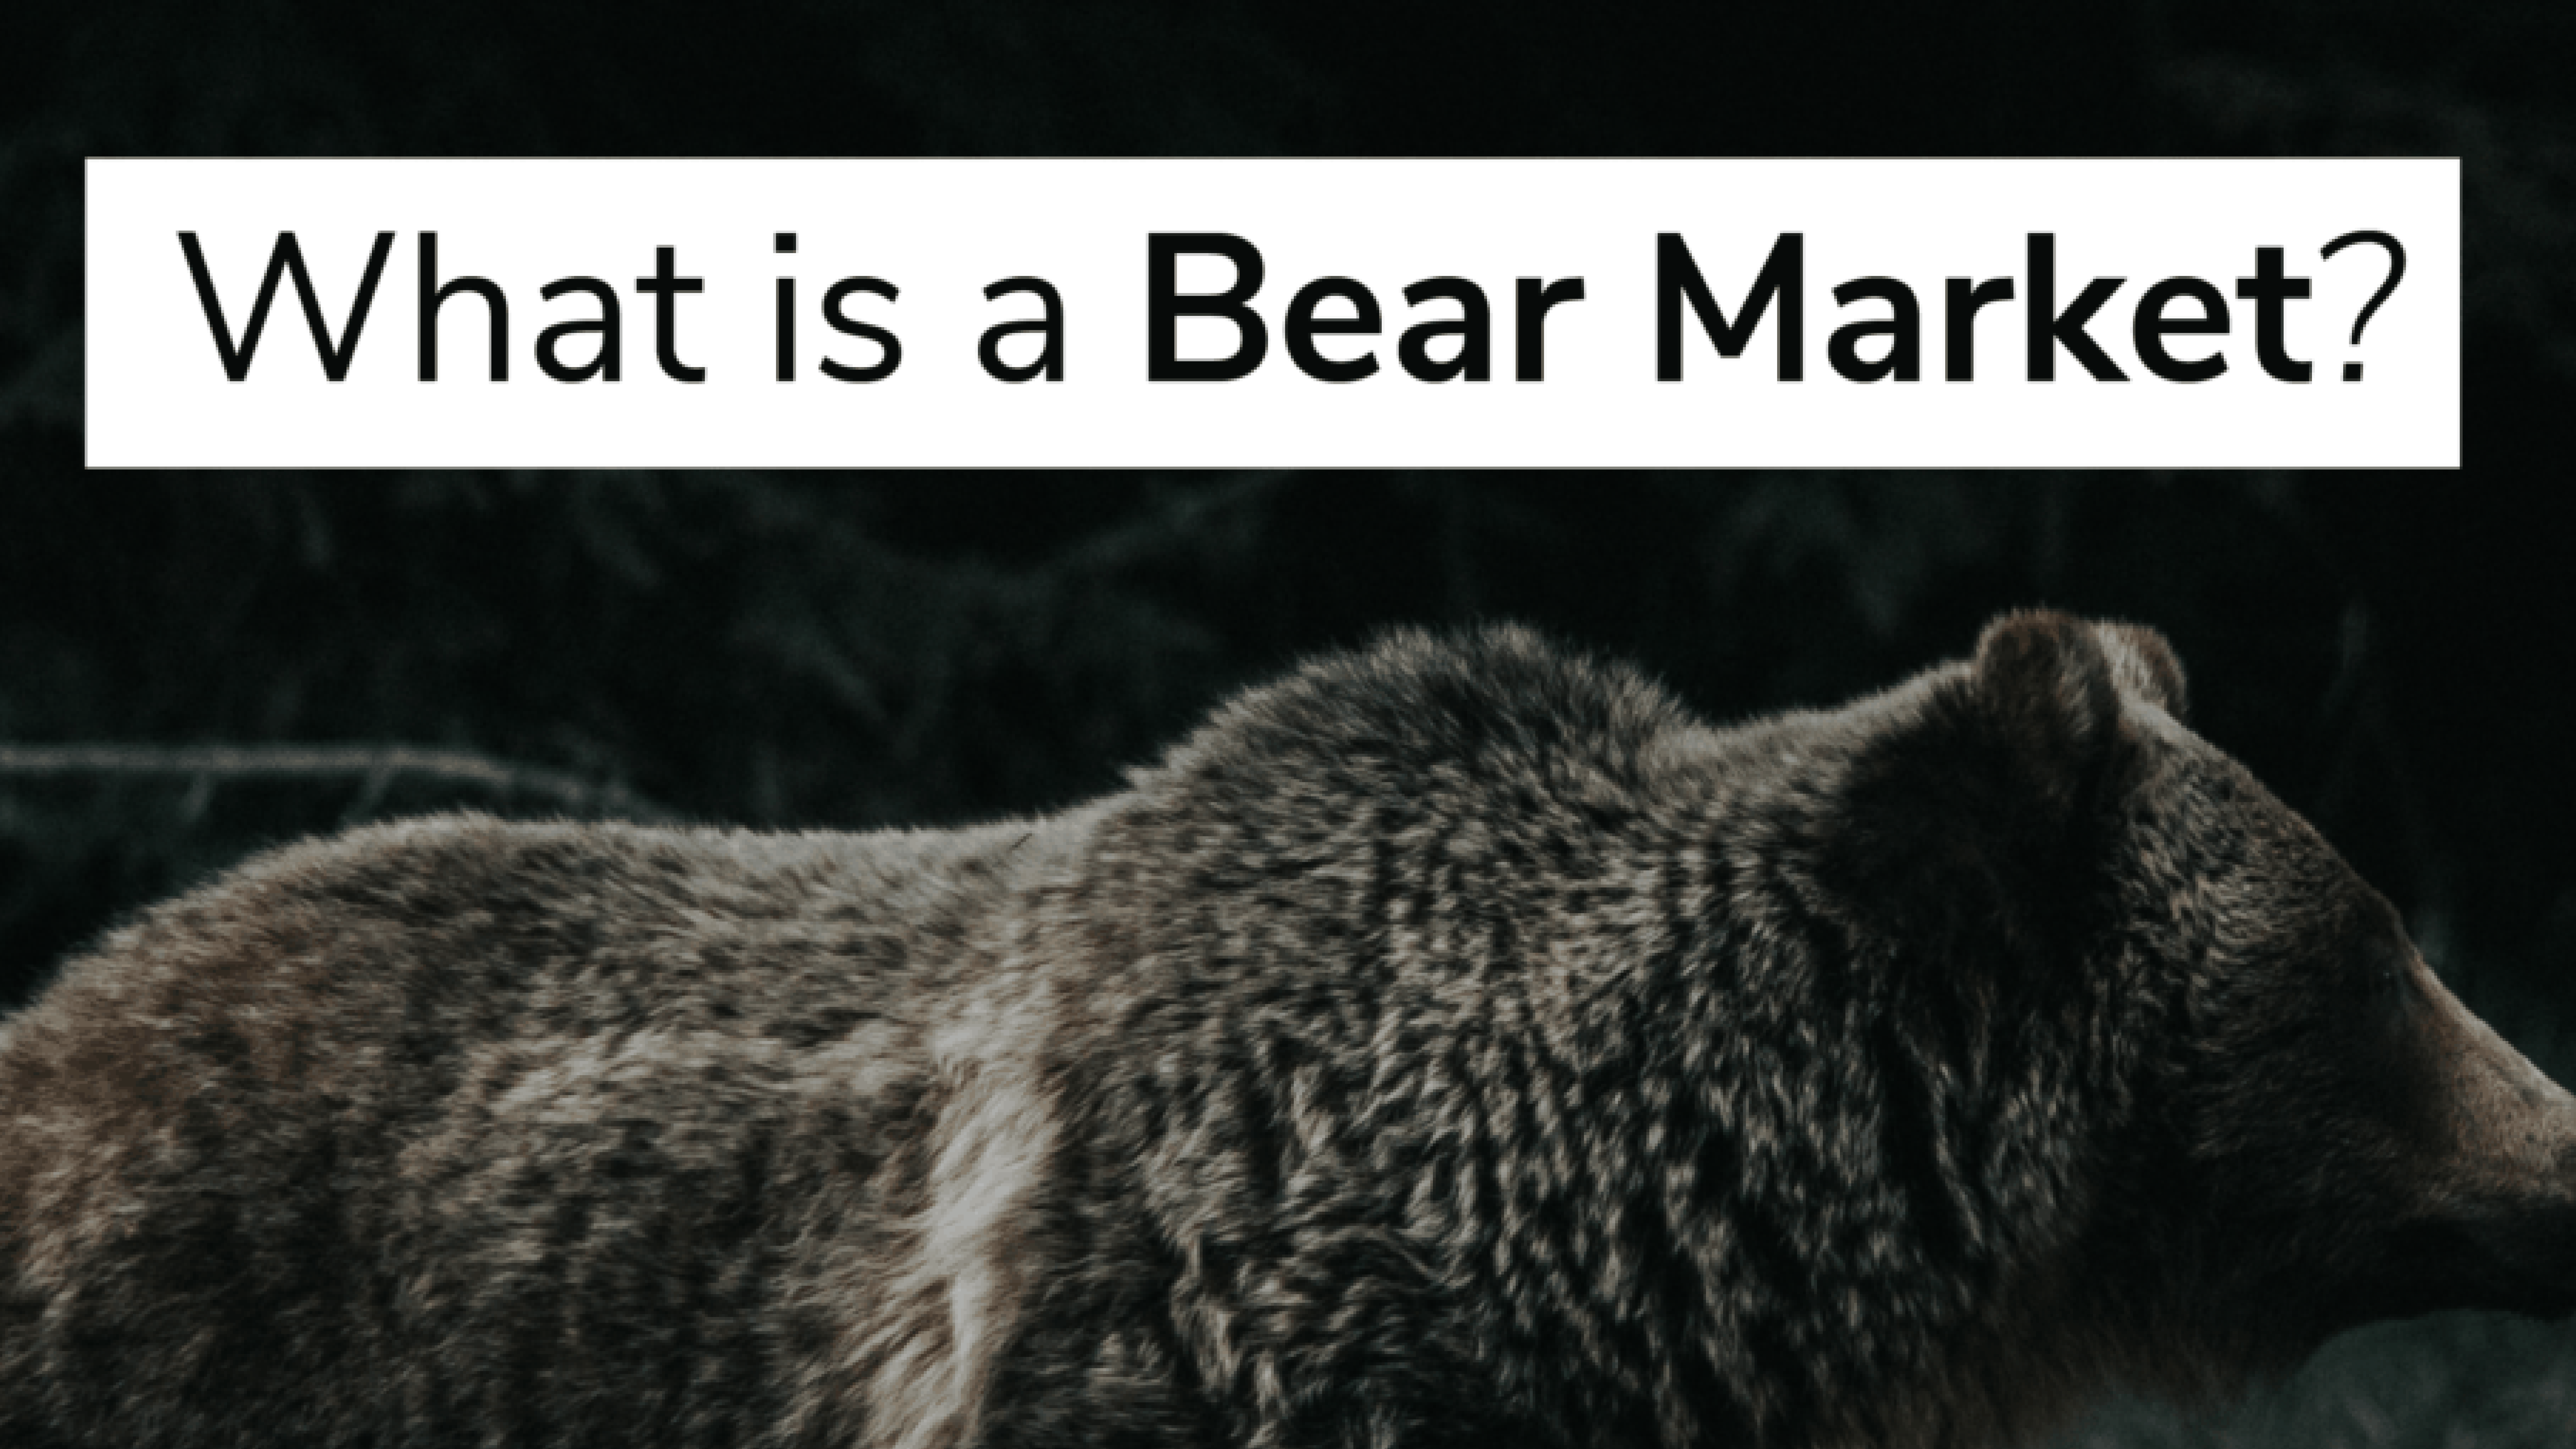 What is a Bear Market?